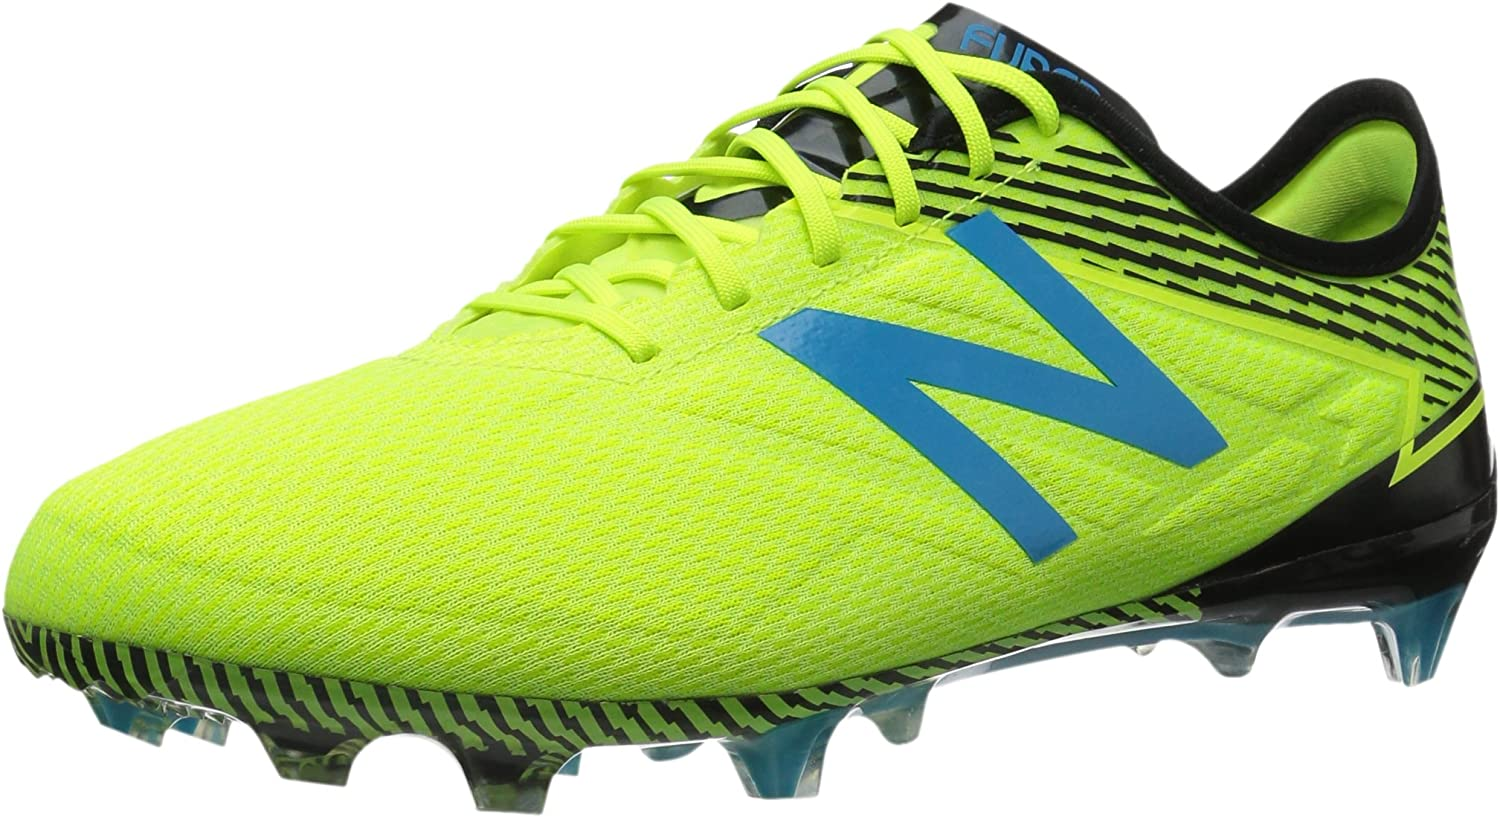 New Balance Mens Furn 3.0 Pro Fg Soccer shoes